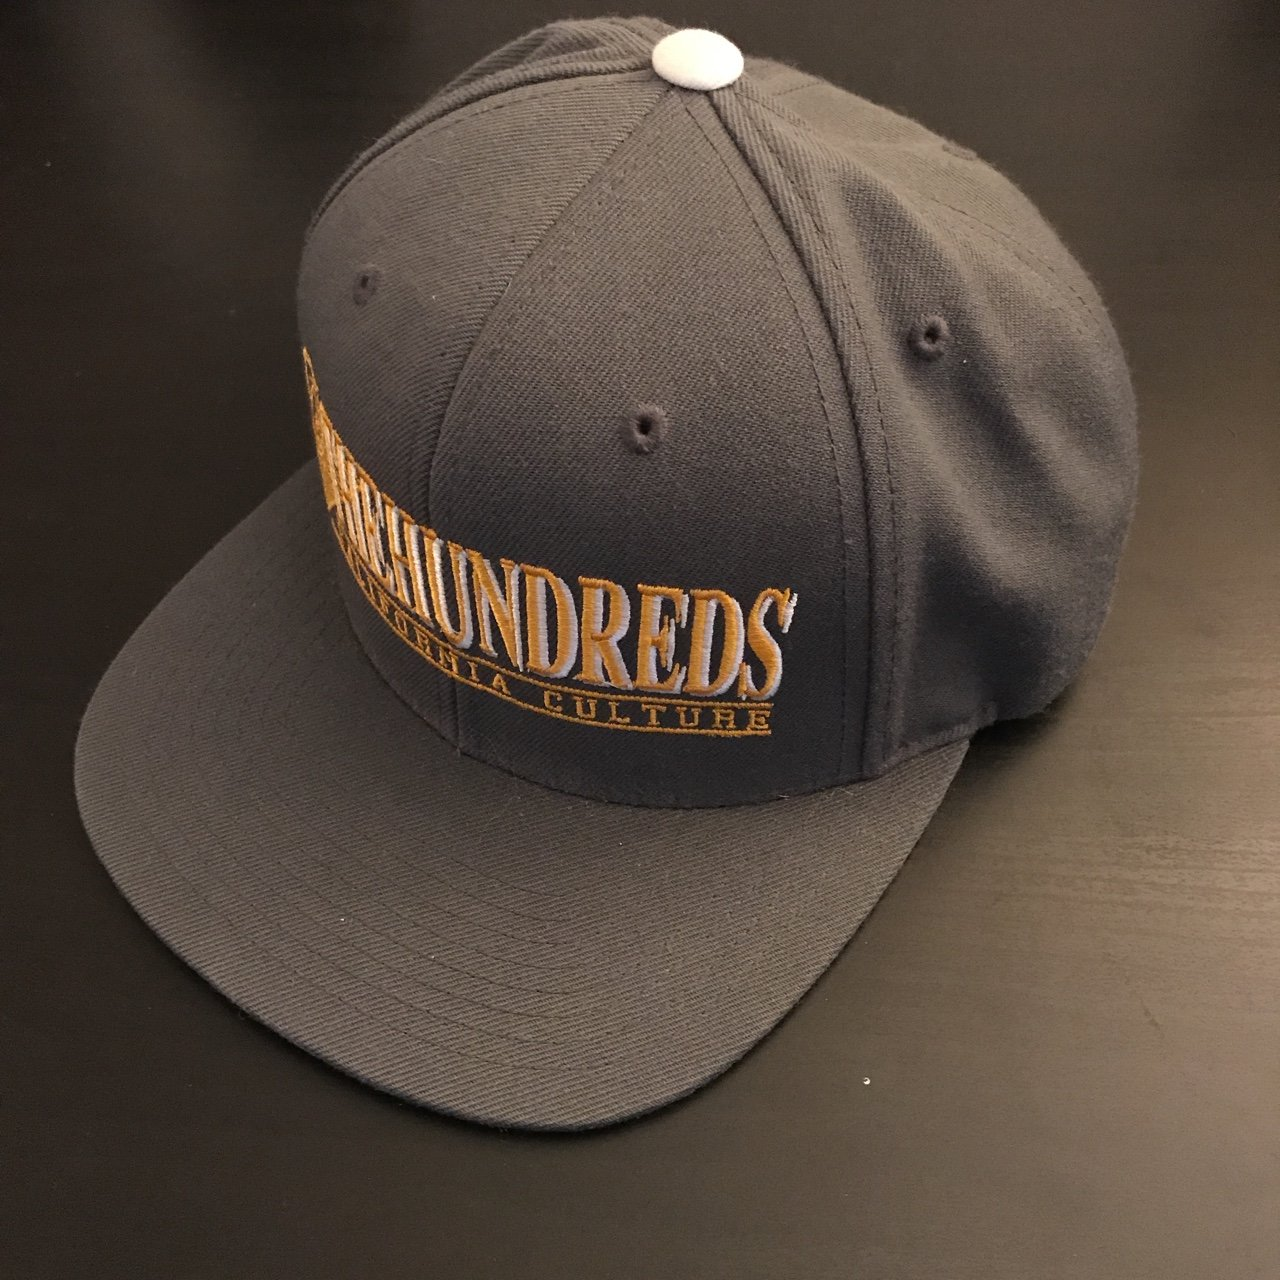 187437de9d9 The Hundreds SnapBack - 10 10